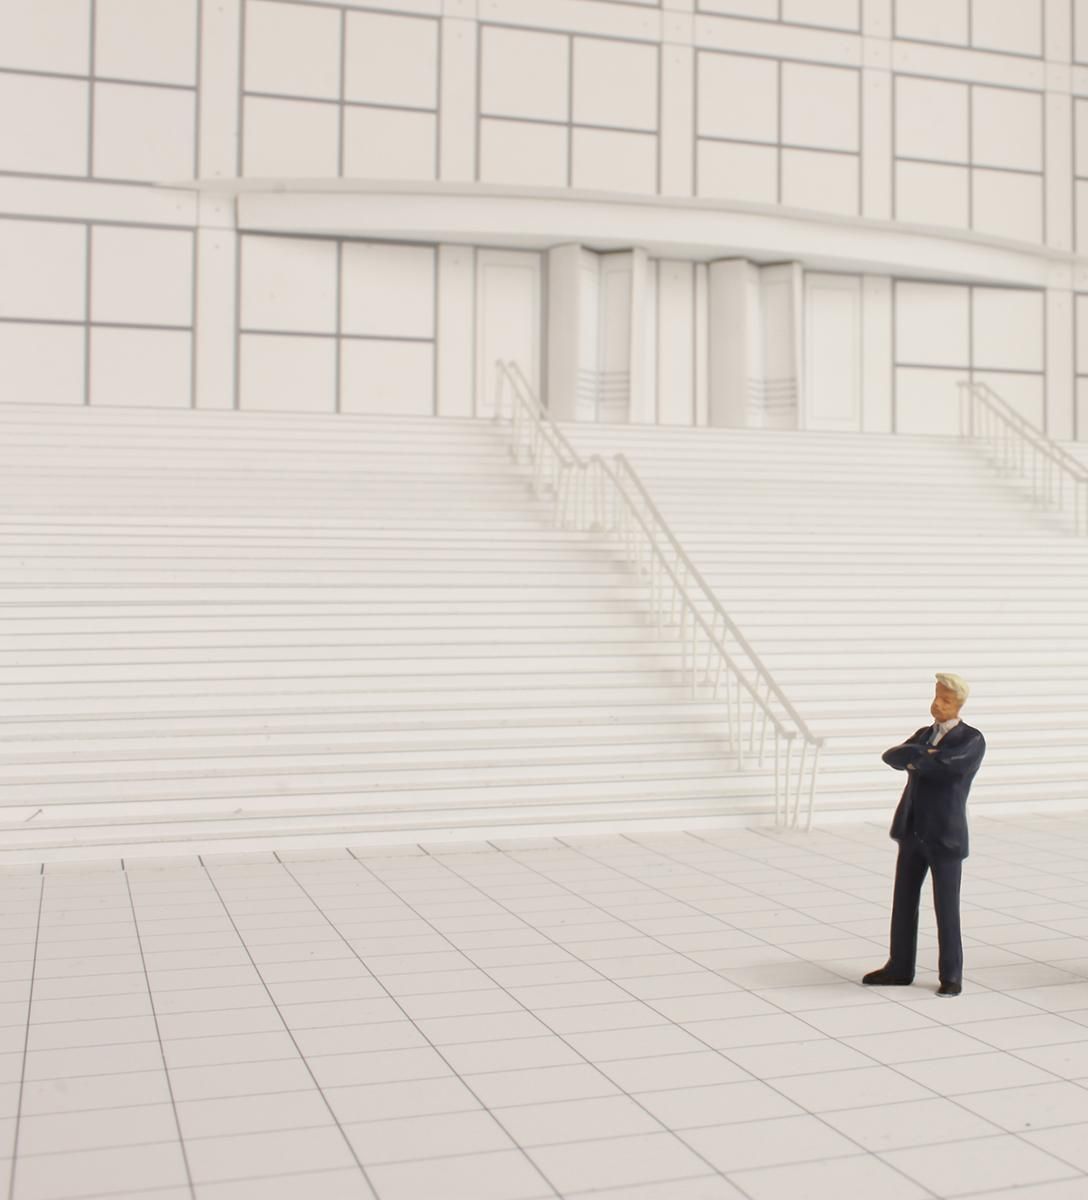 A black-and-white model of the MCA's front staircase with a male figurine in a black suit standing on the plaza.